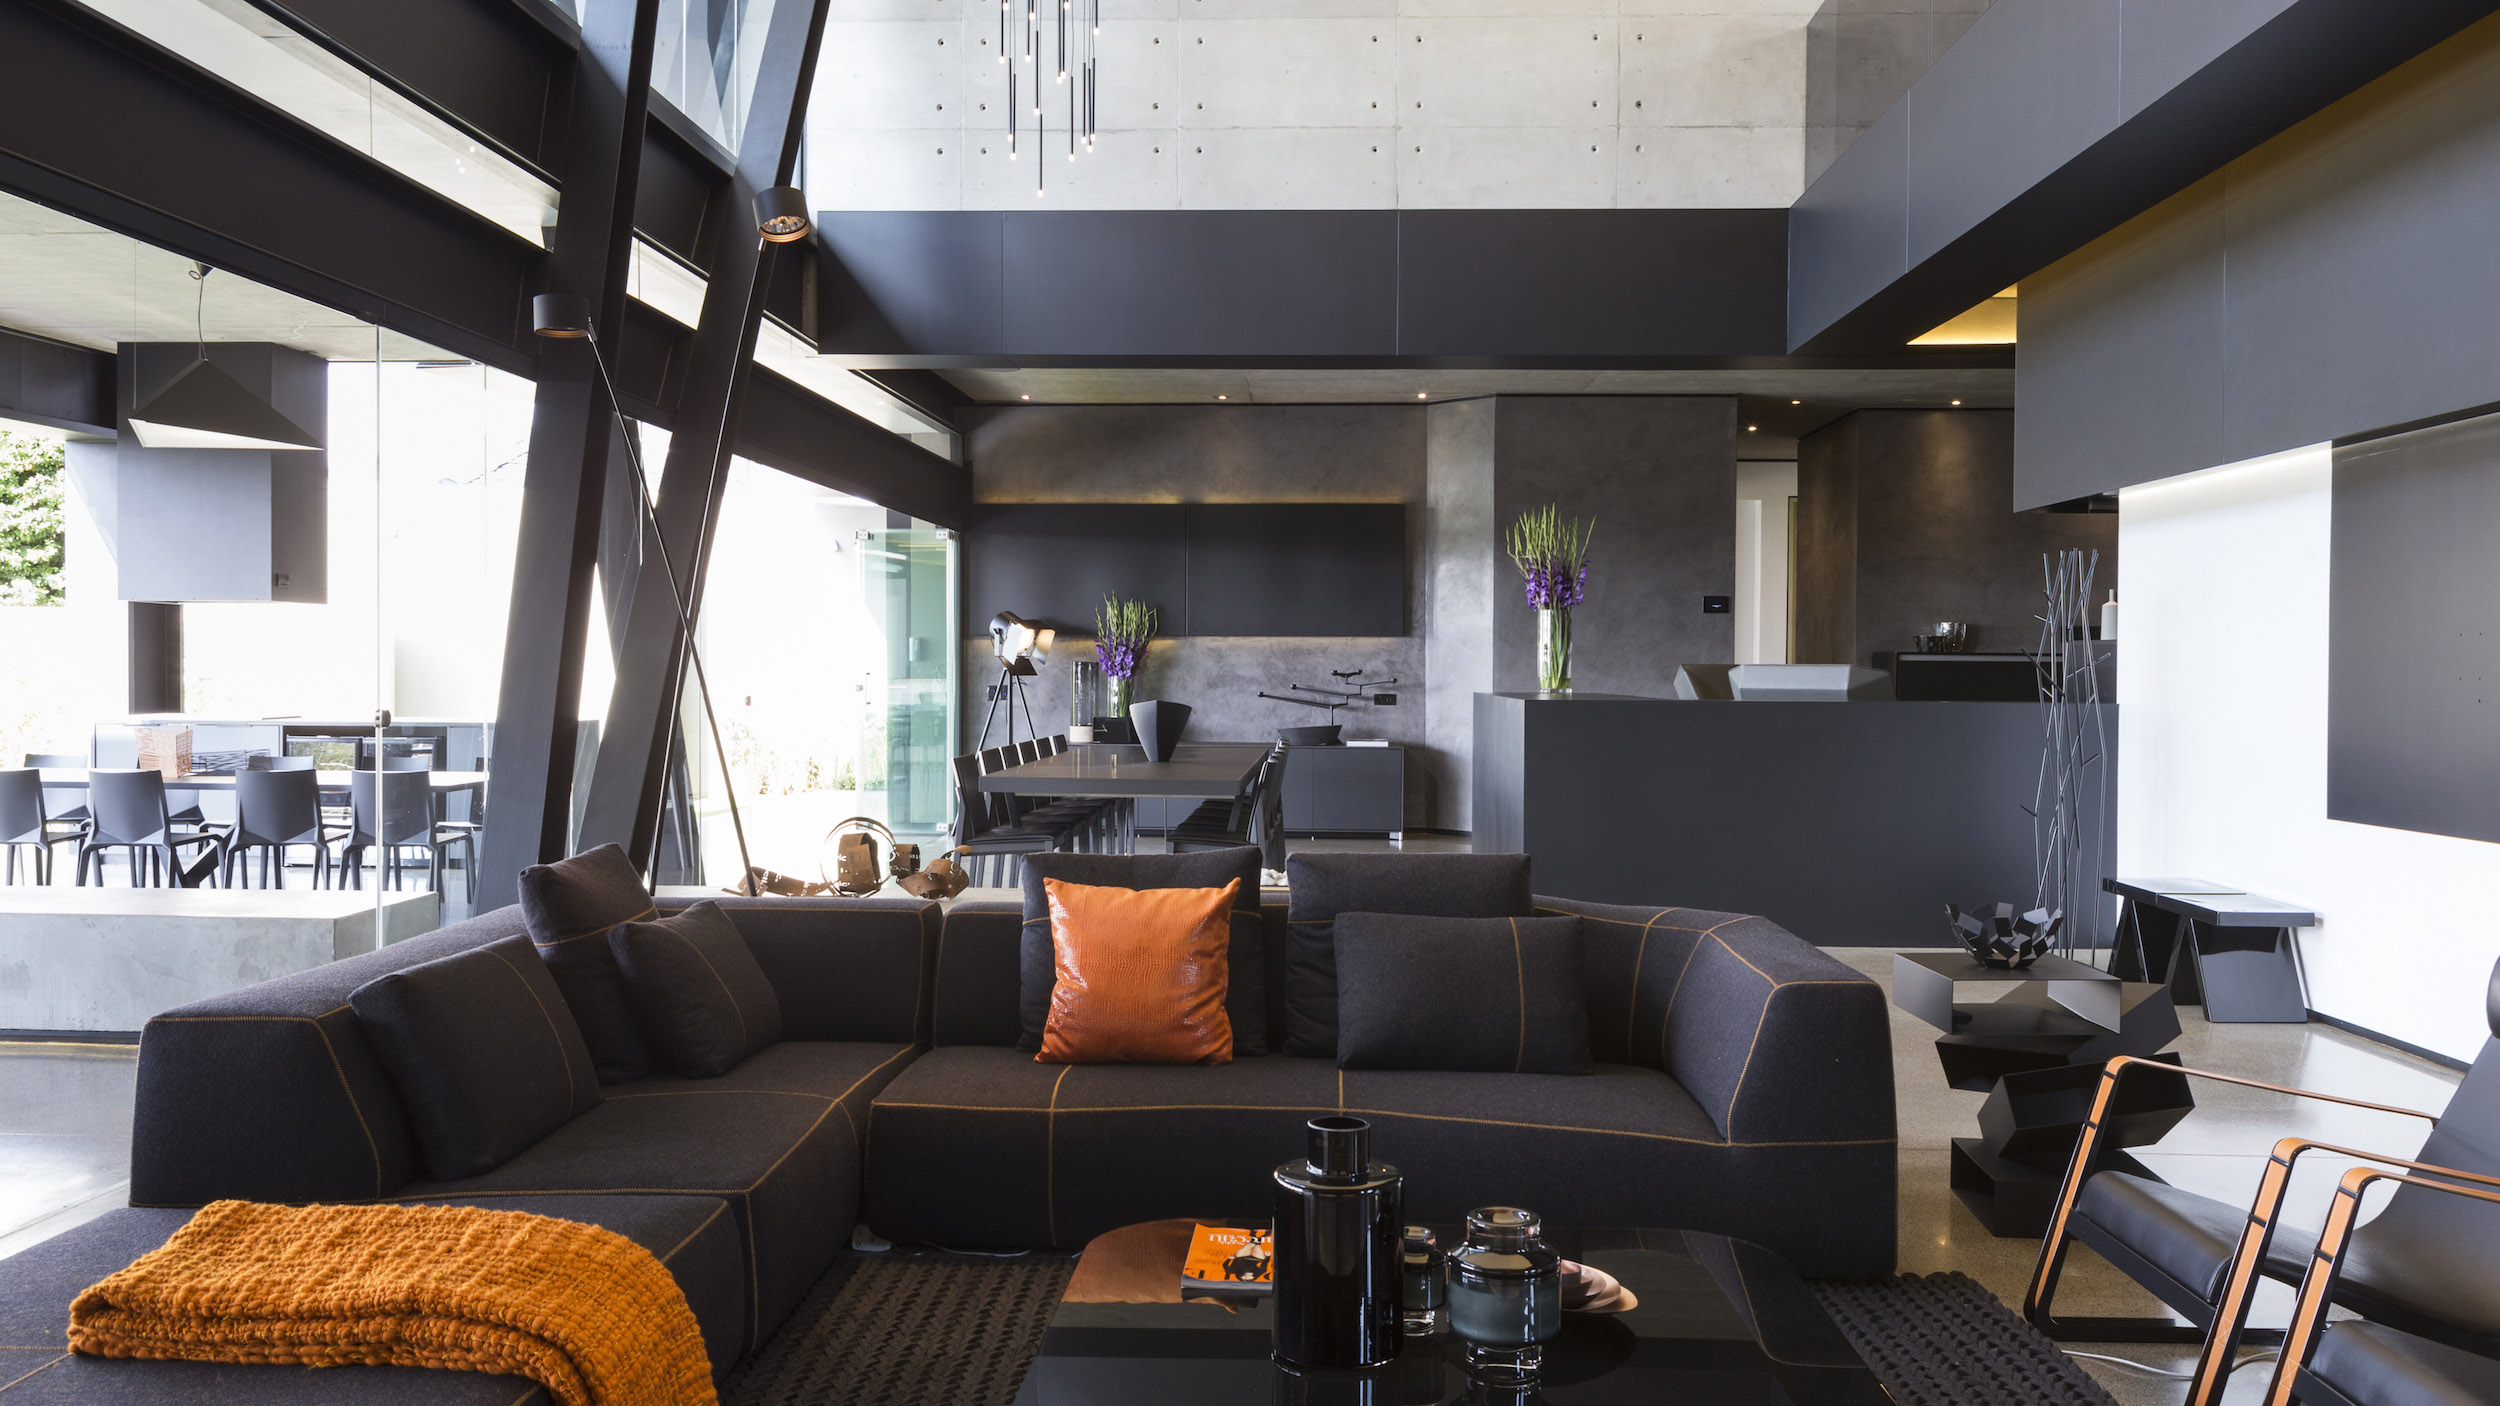 Kloof Road Masterpiece House in Johannesburg by Nico van der Meulen Architects-17